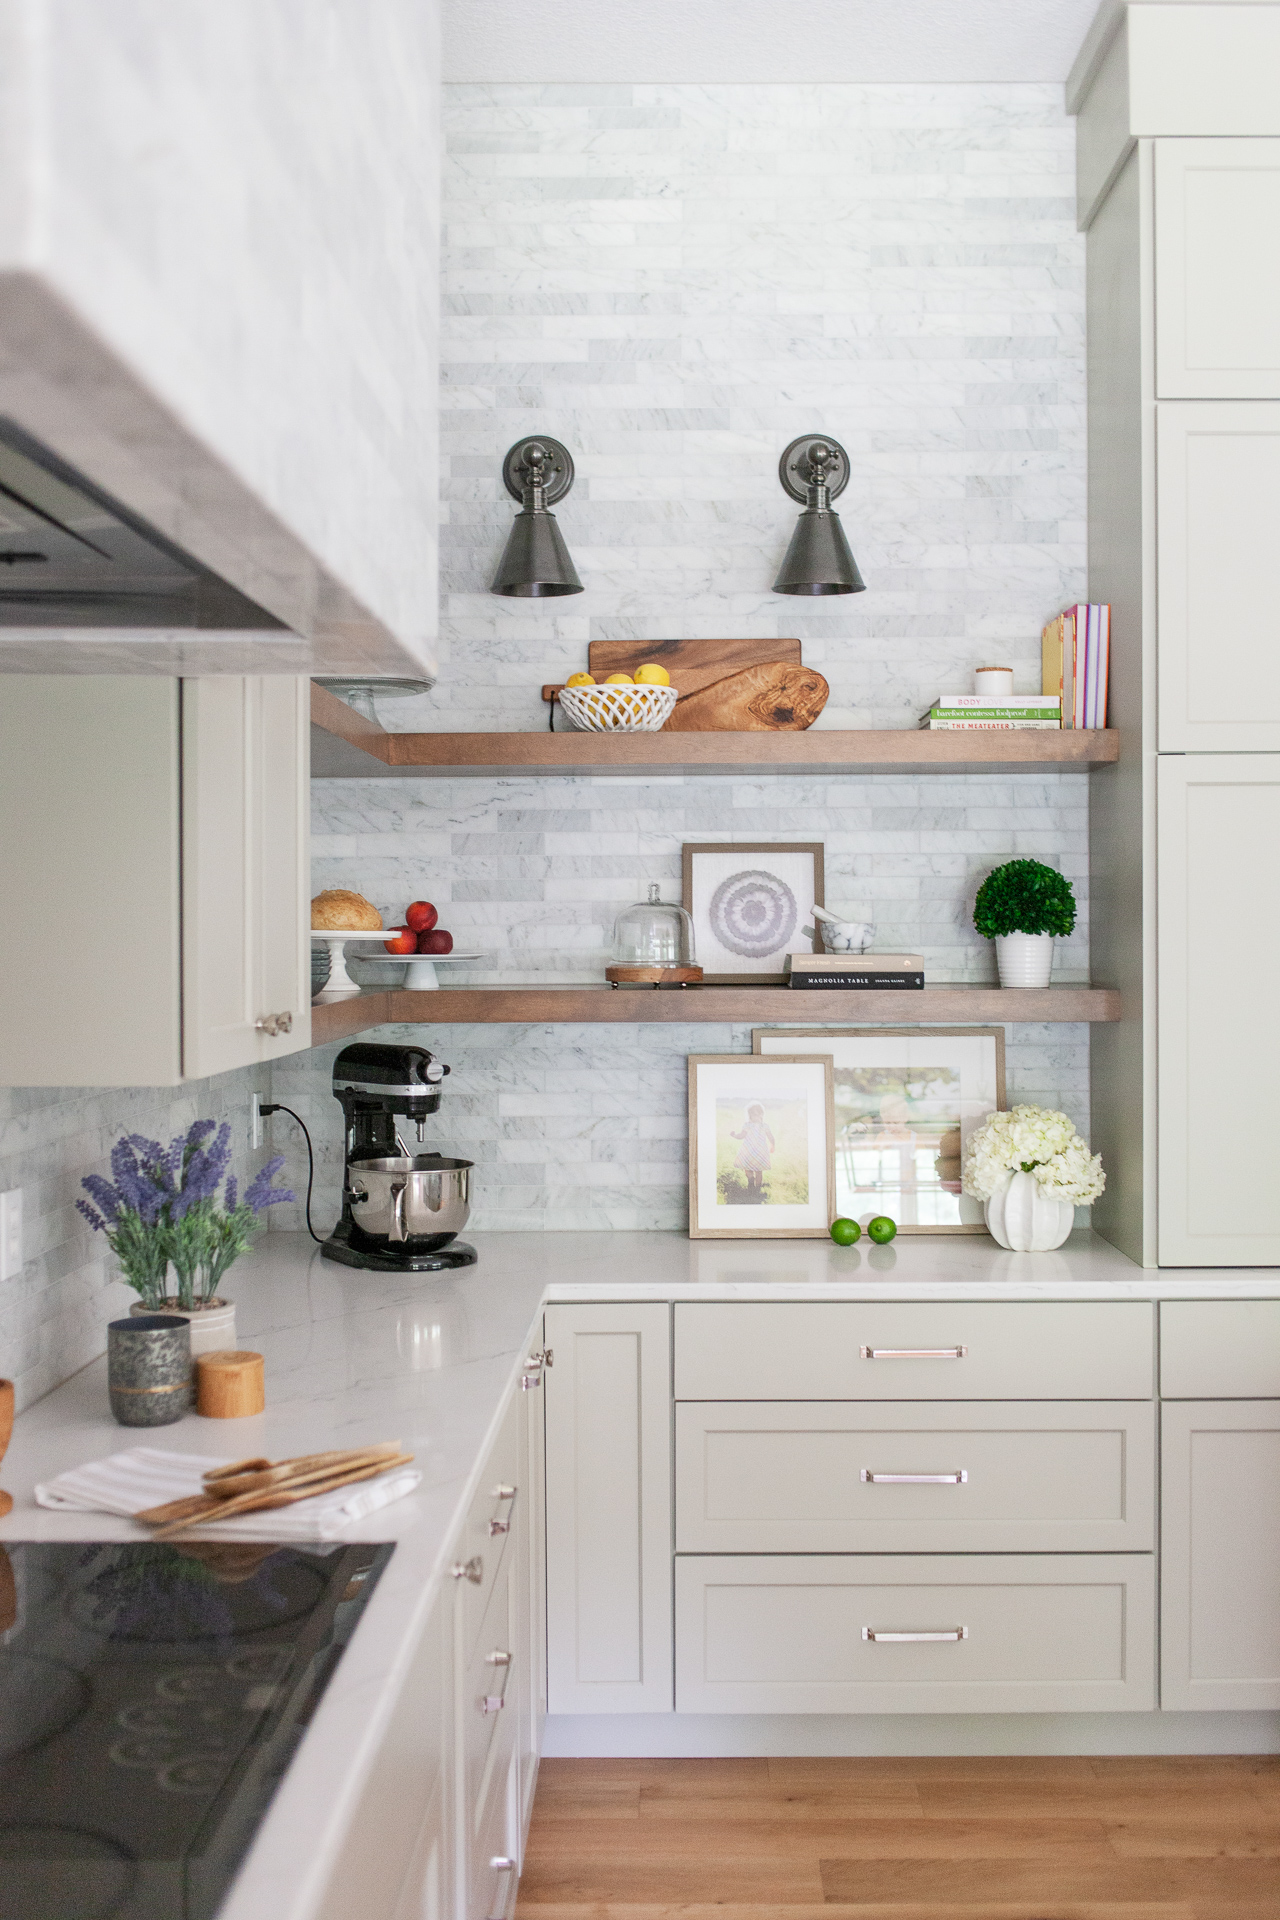 Kitchen accessories from  E2U  stun on these open shelves.